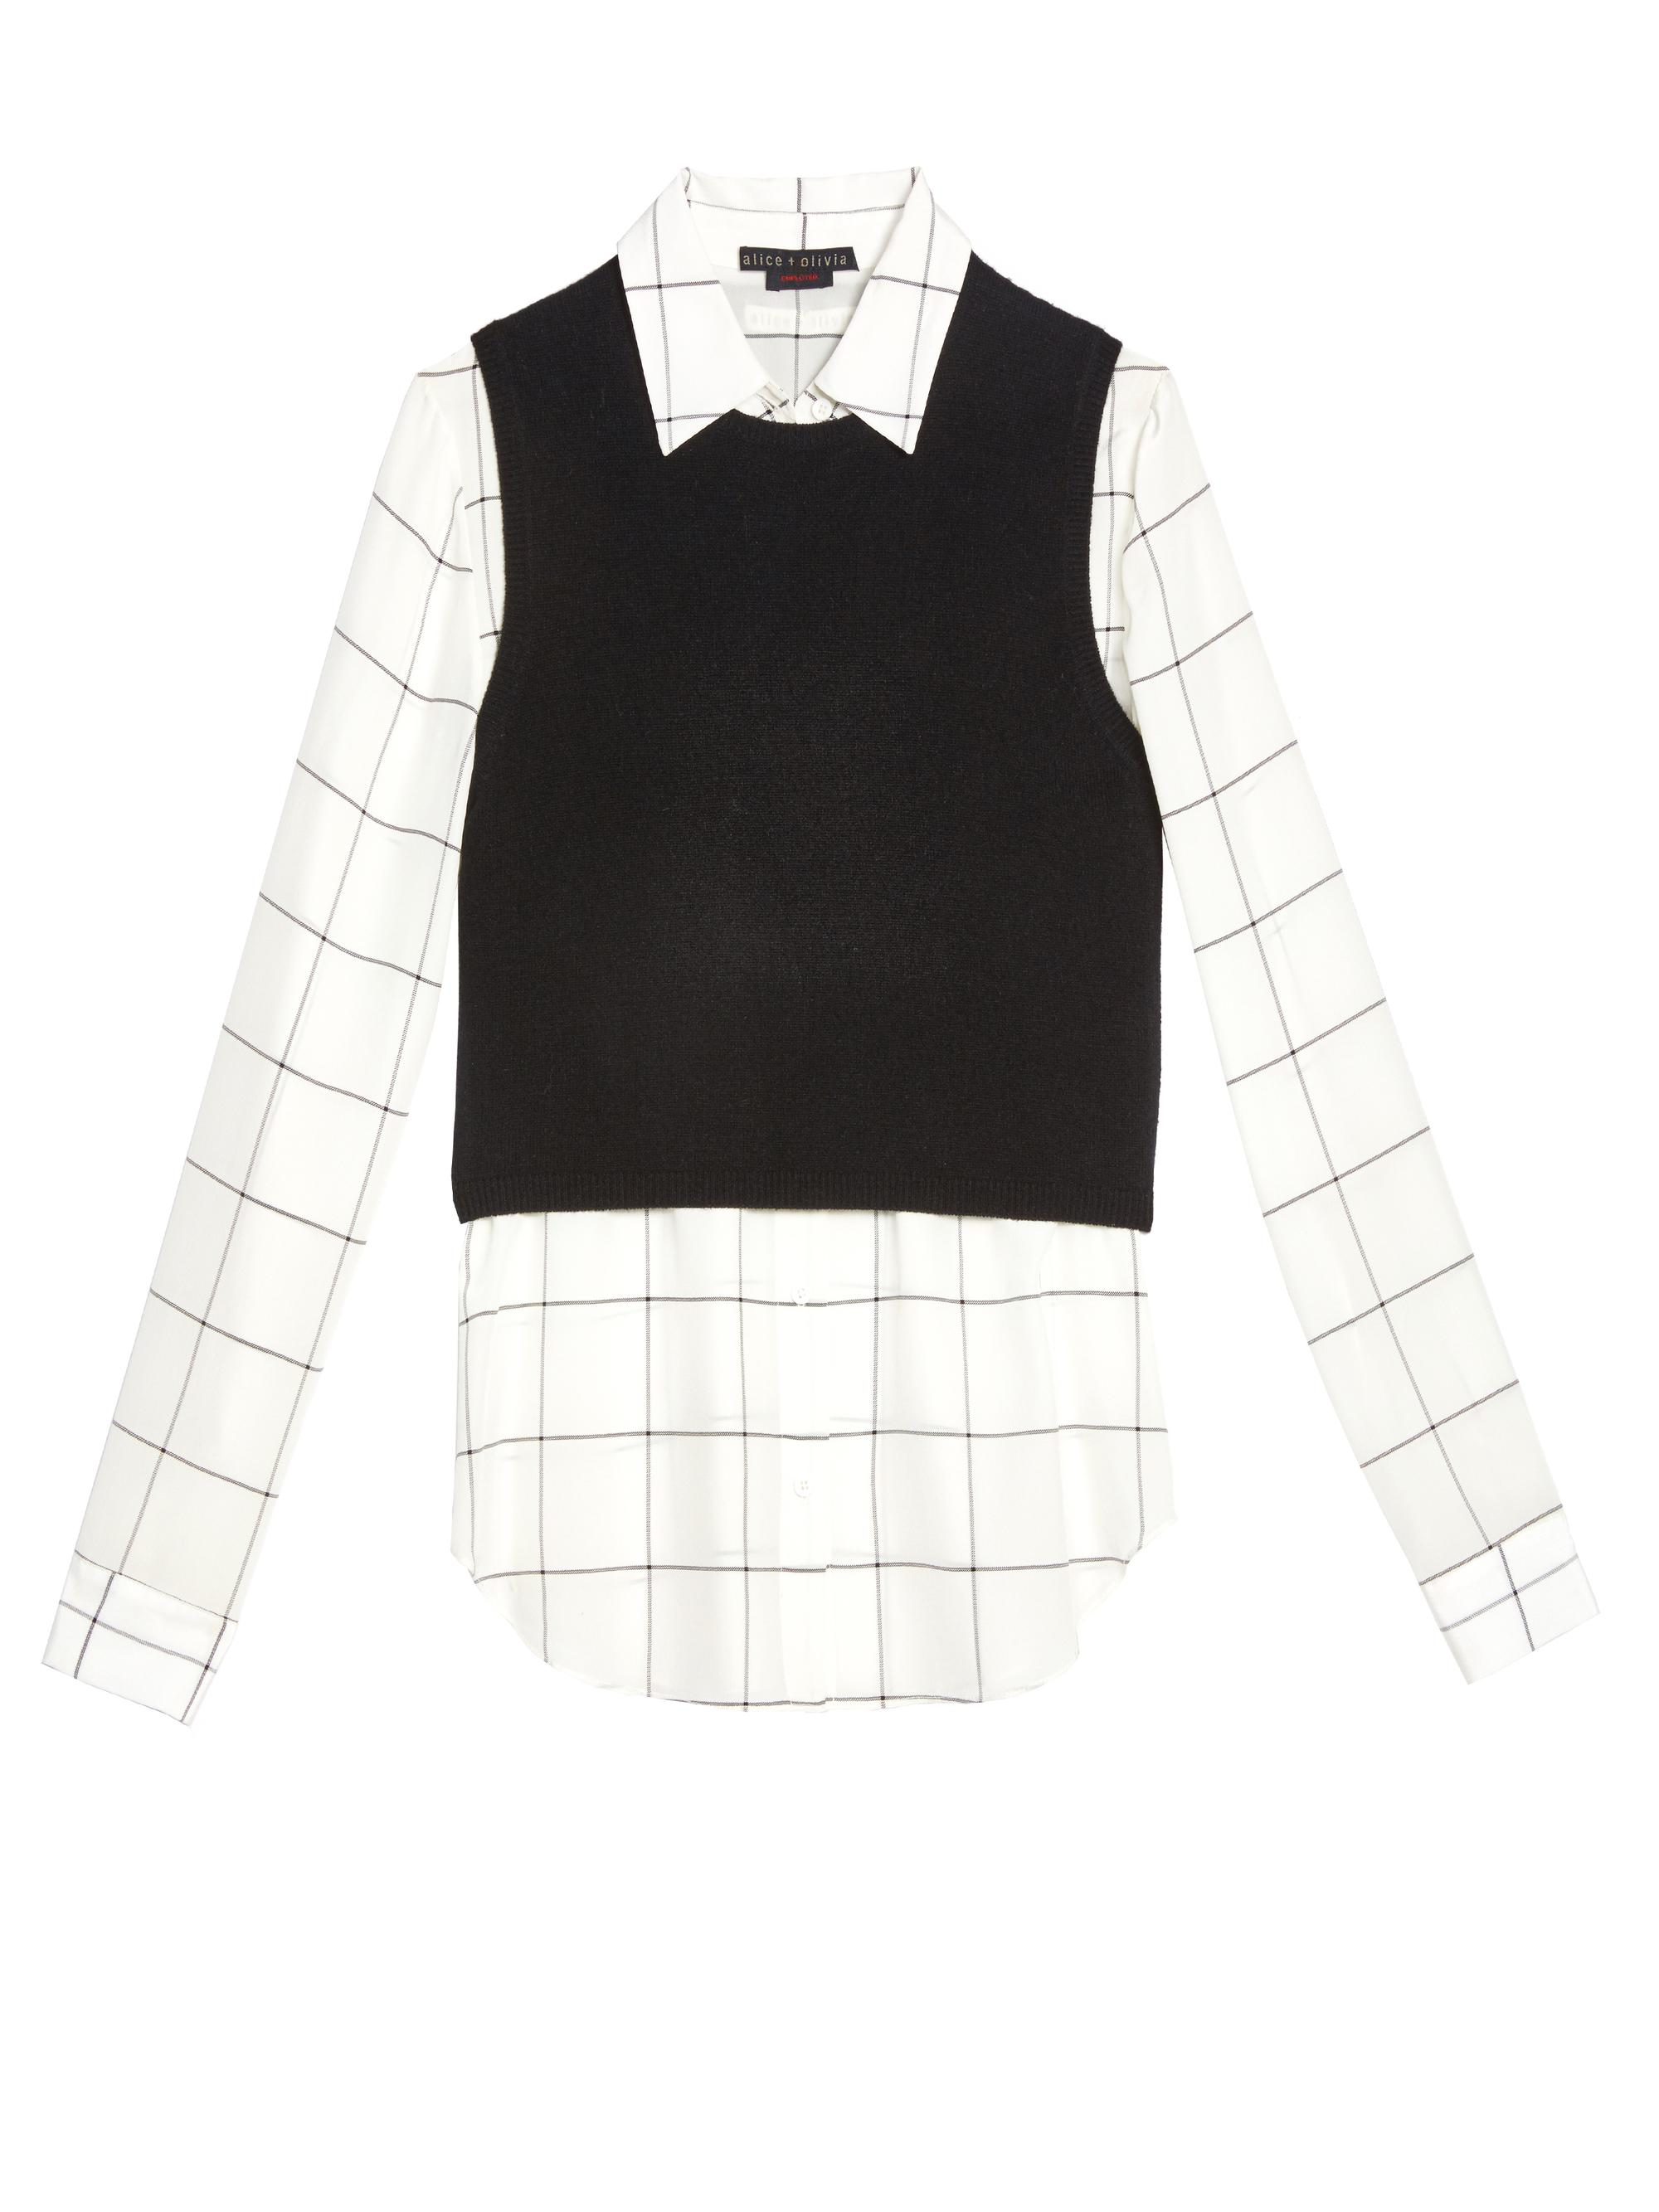 Black Cropped Sweater Vest - Best Sweater 2017